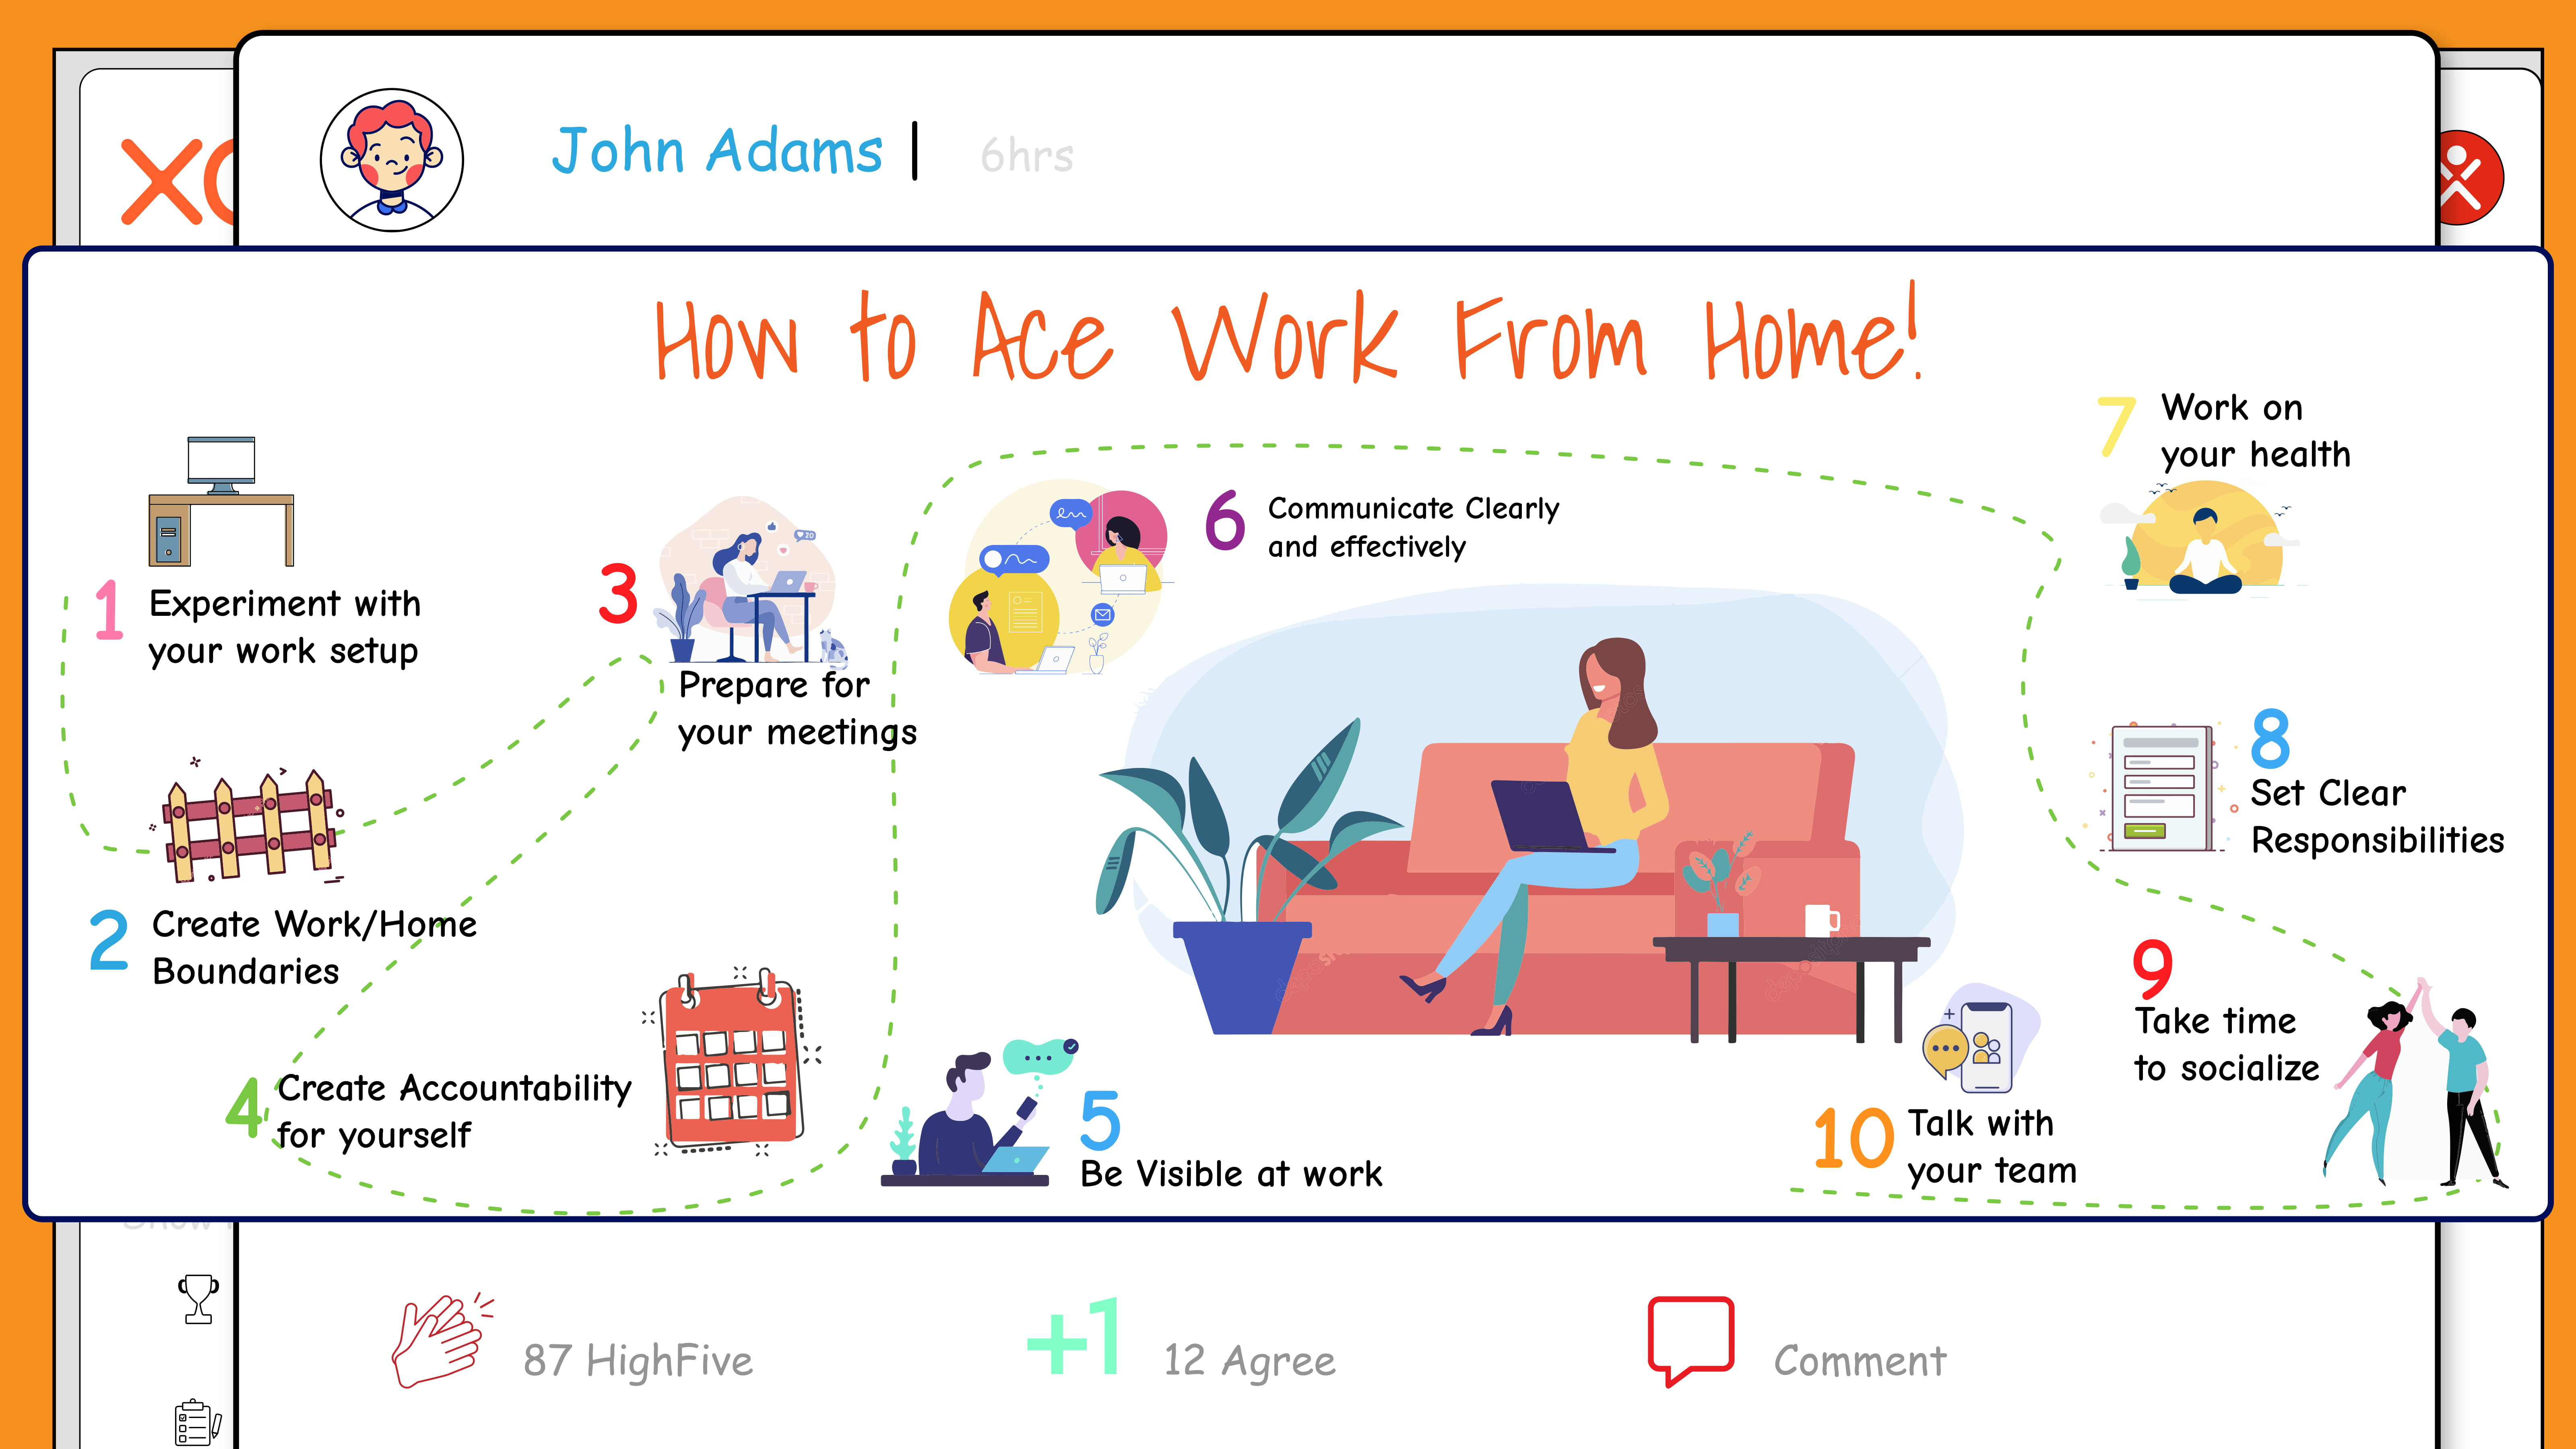 How to ace work from home